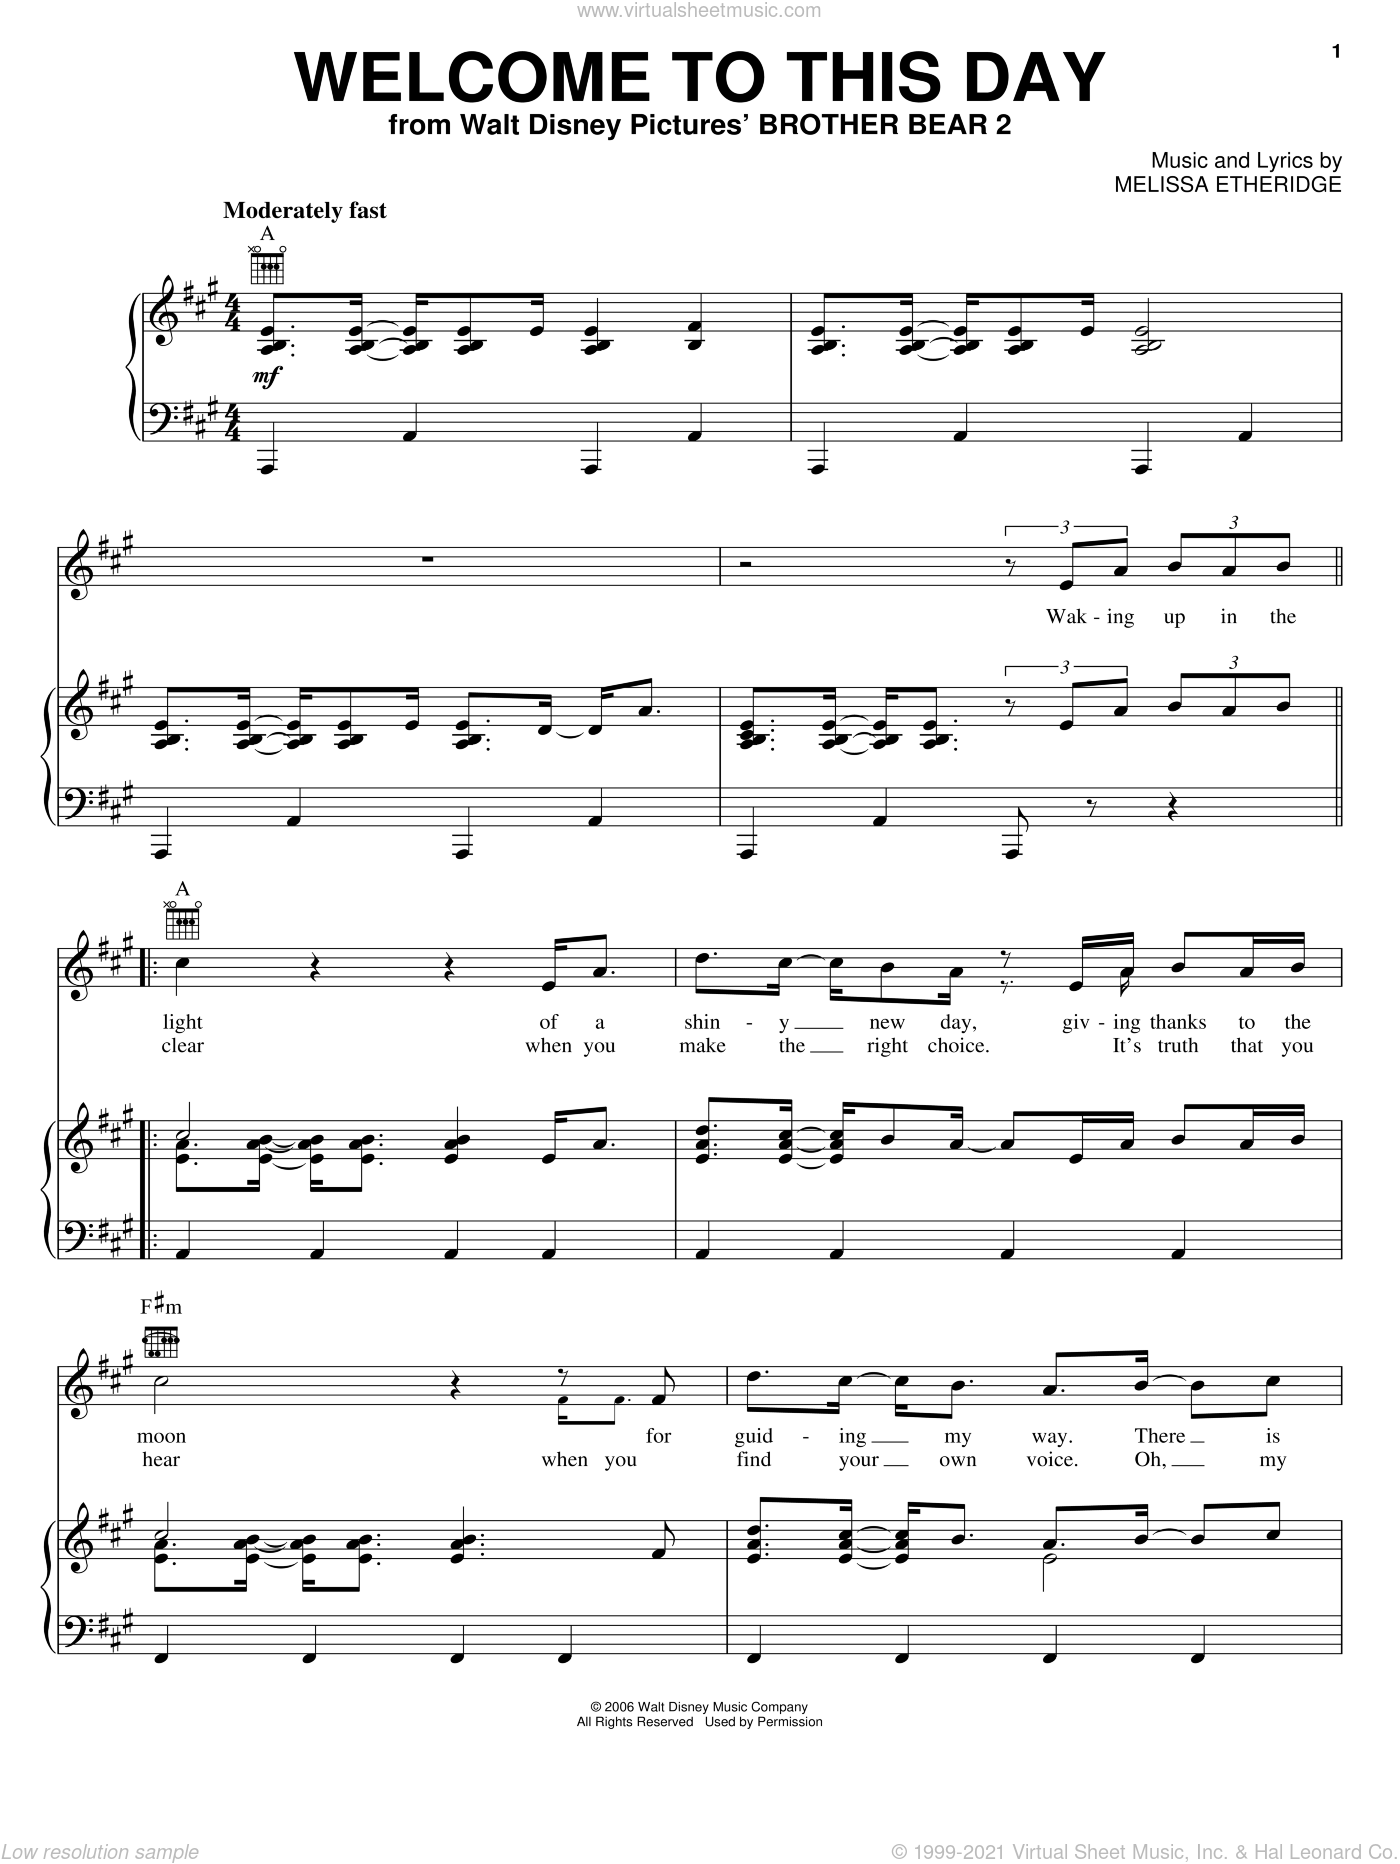 Welcome To This Day sheet music for voice, piano or guitar by Melissa Etheridge and Brother Bear 2 (Movie), intermediate skill level